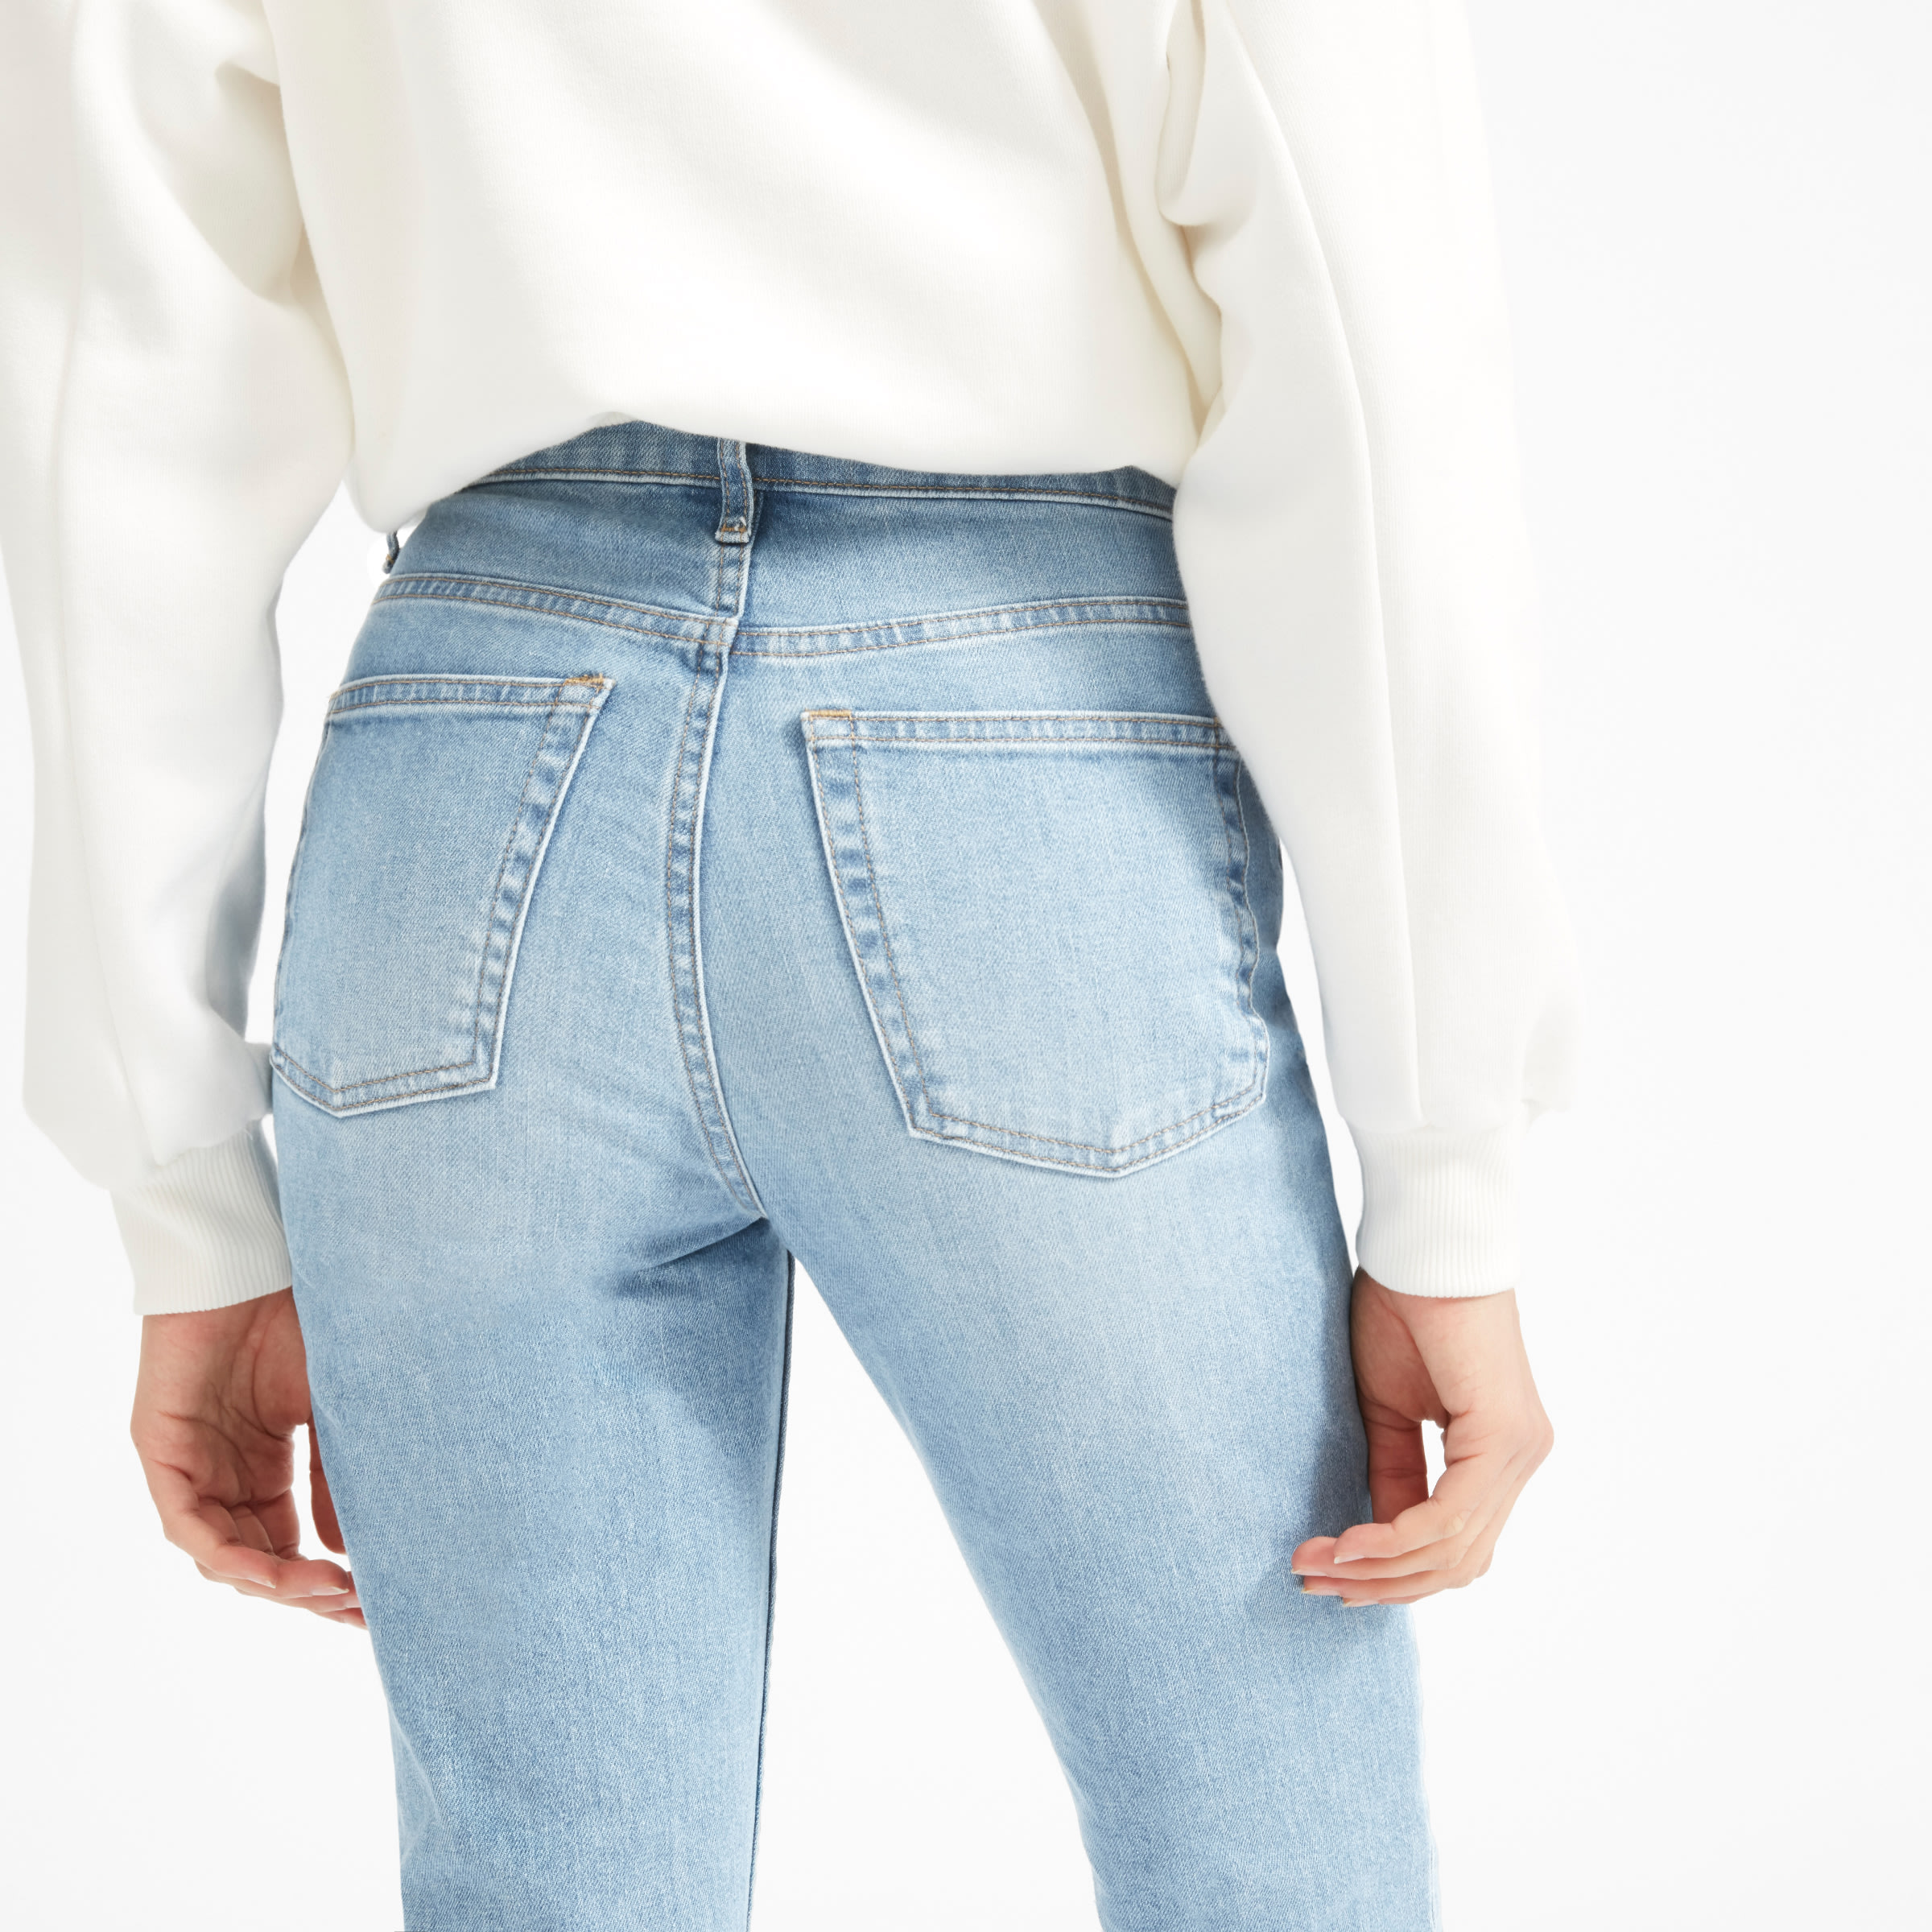 The Cheeky-Straight Denim - $78